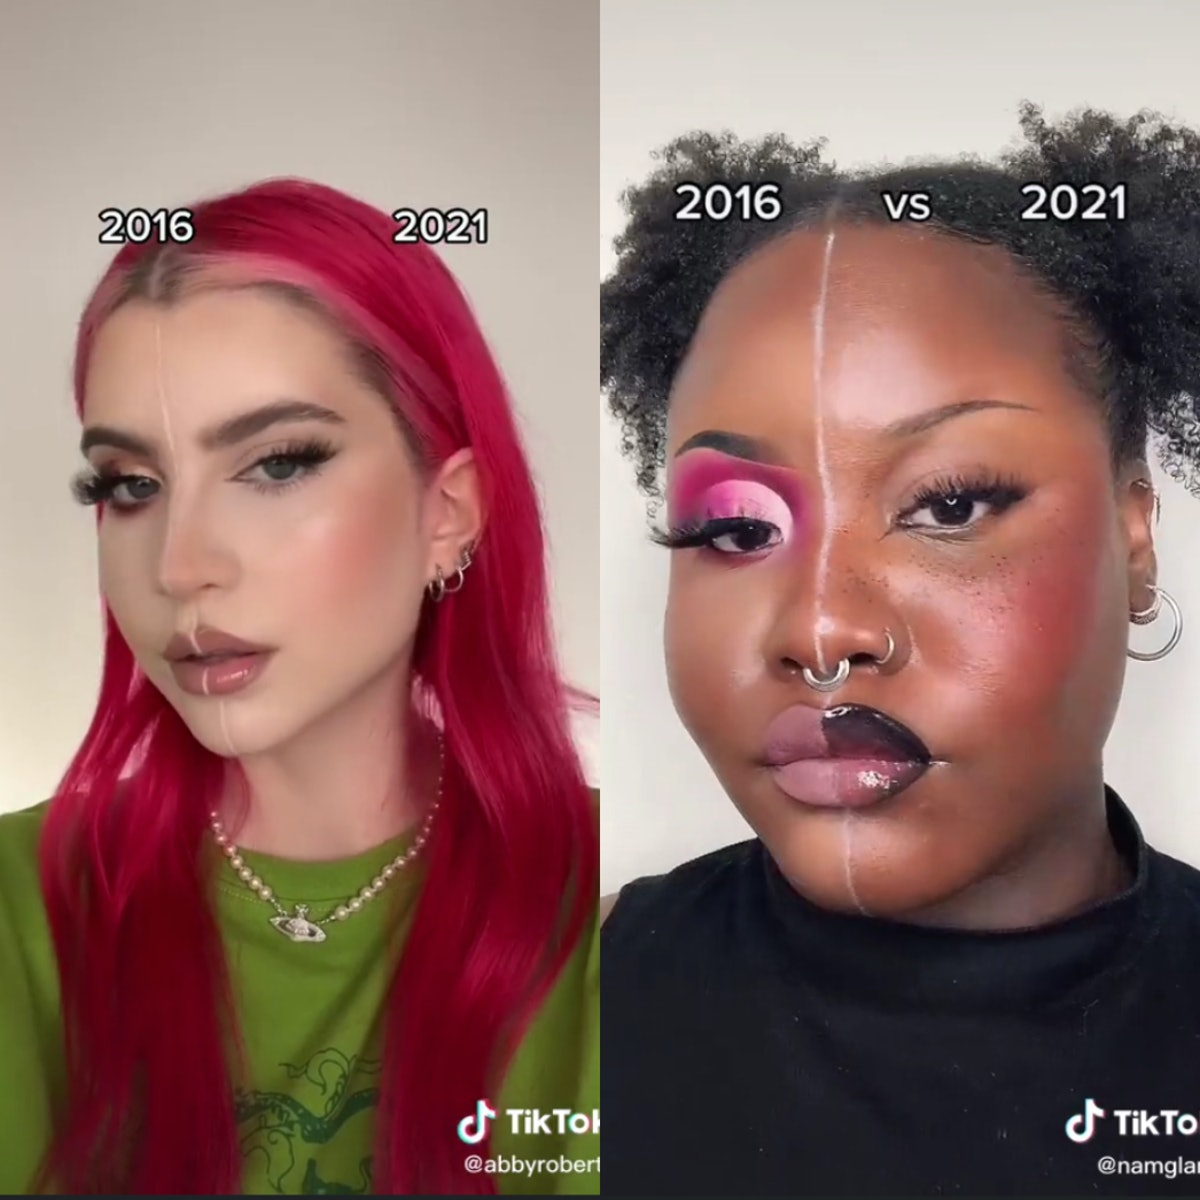 Abby Robters and namglami comparing 2016 and 2021 makeup trends on TikTok.